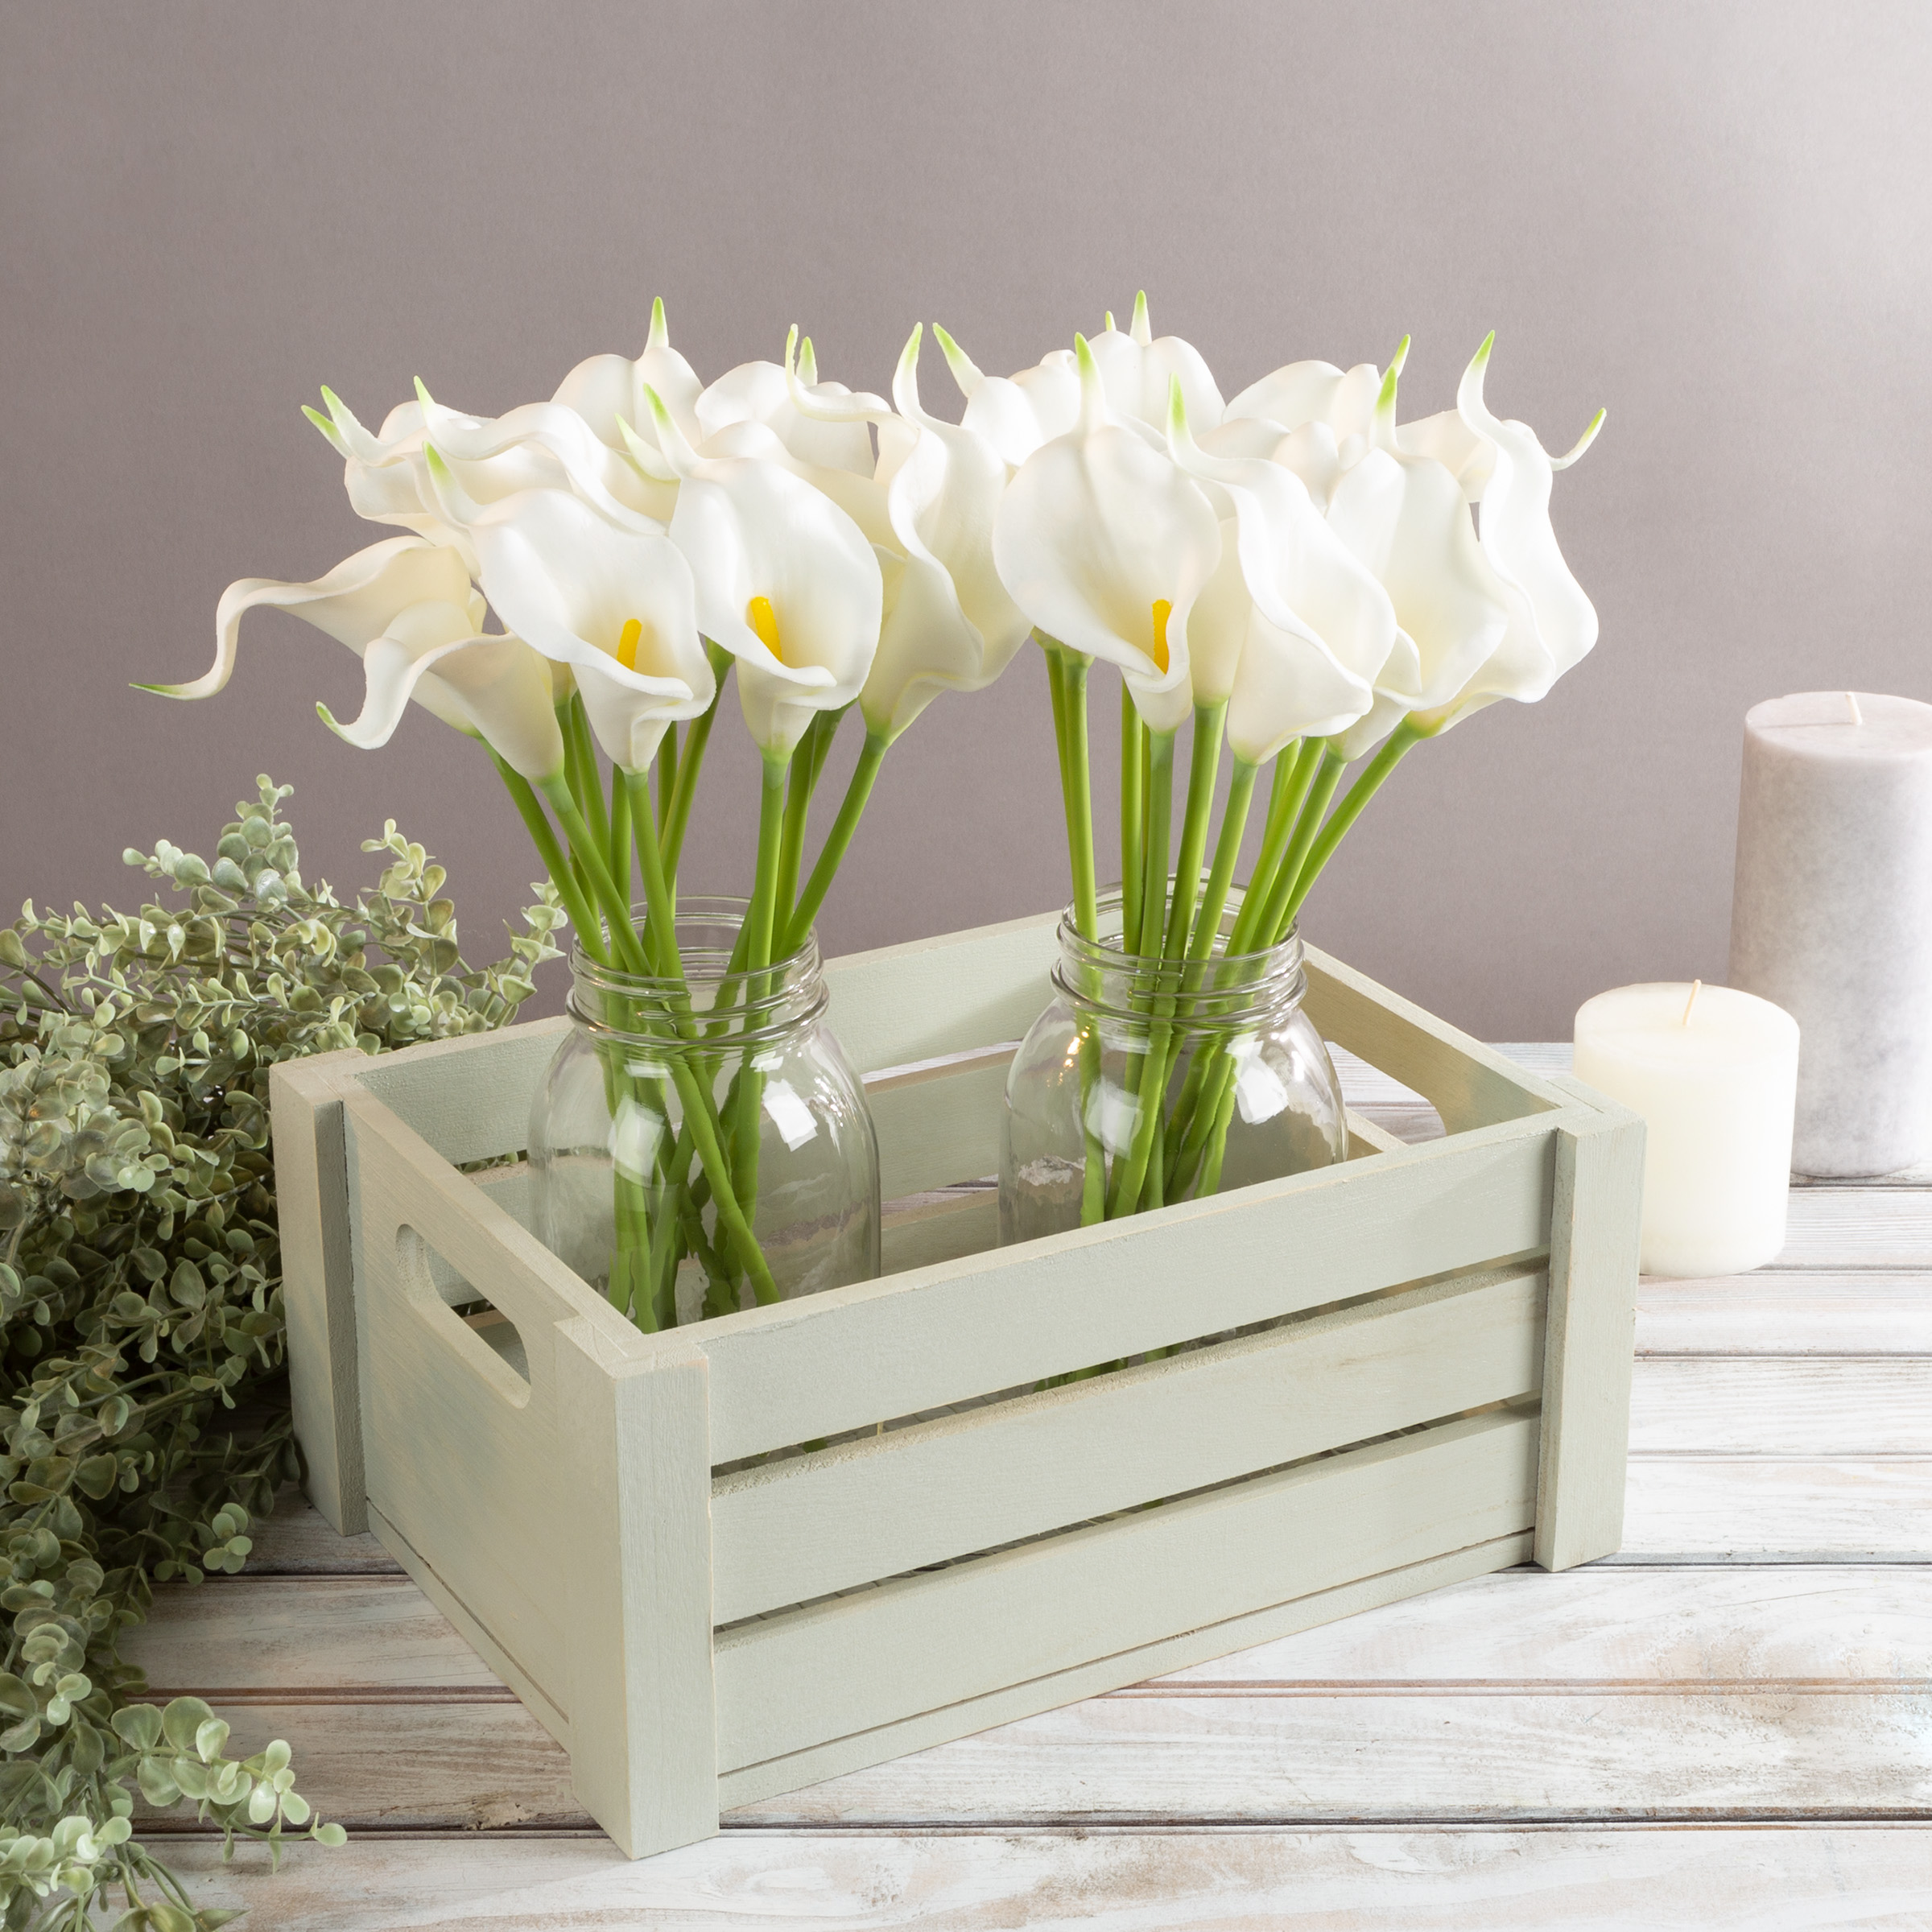 Pure Garden Artificial Calla-Lily with Stems - Real Touch Fake Flowers for Home Decor, Wedding, Bridal/Baby Shower, More- 24 Pc Set (White)